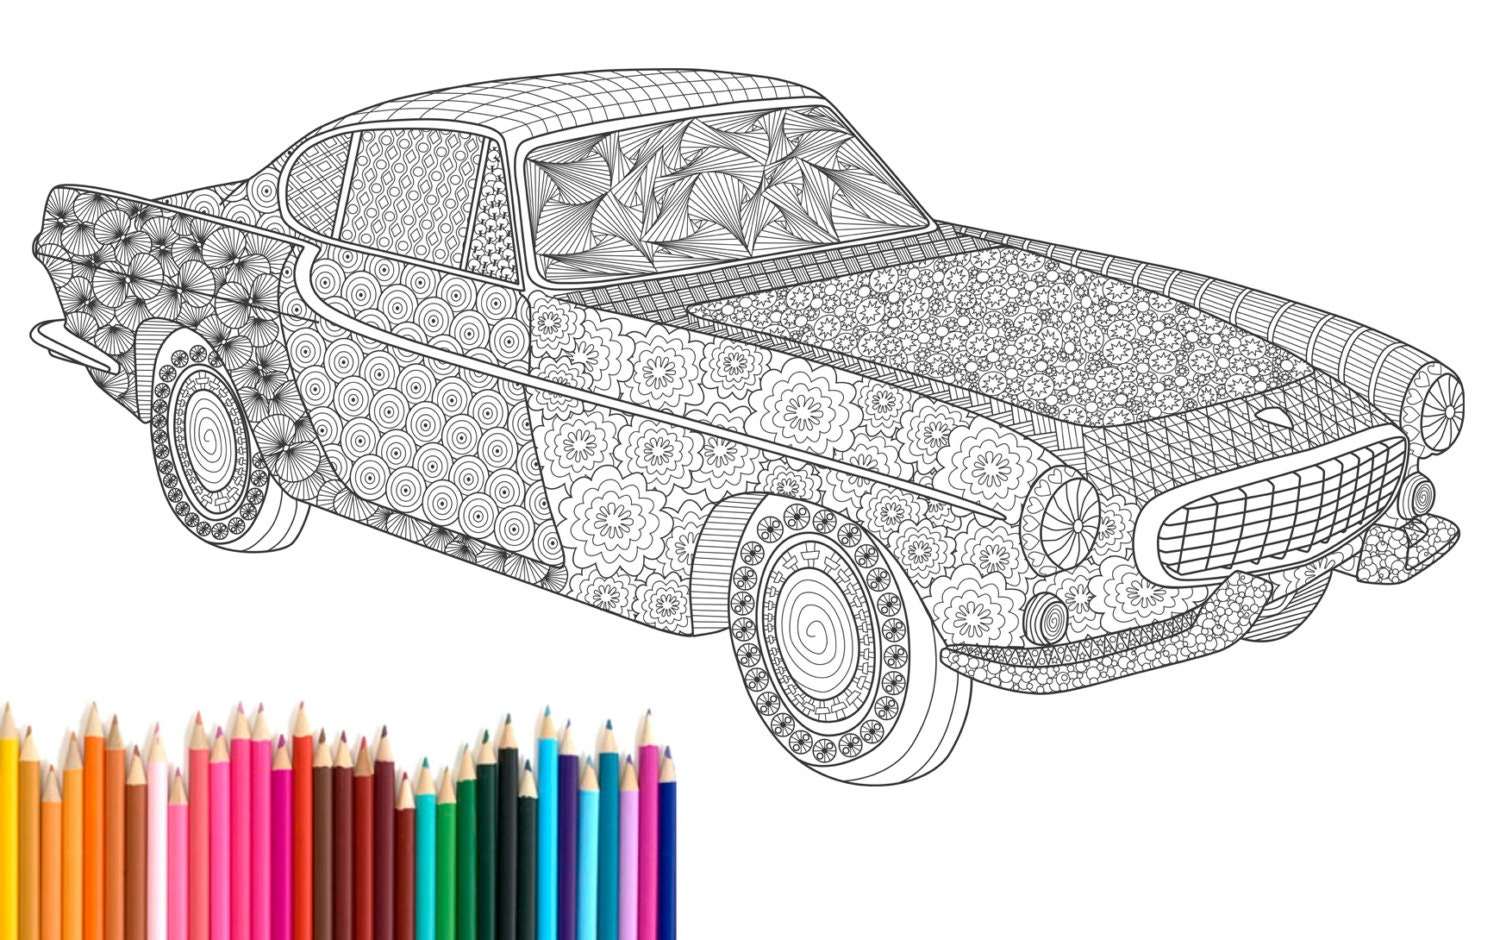 pdf printable adult coloring page zentangle volvo p1800 by recyman. Black Bedroom Furniture Sets. Home Design Ideas